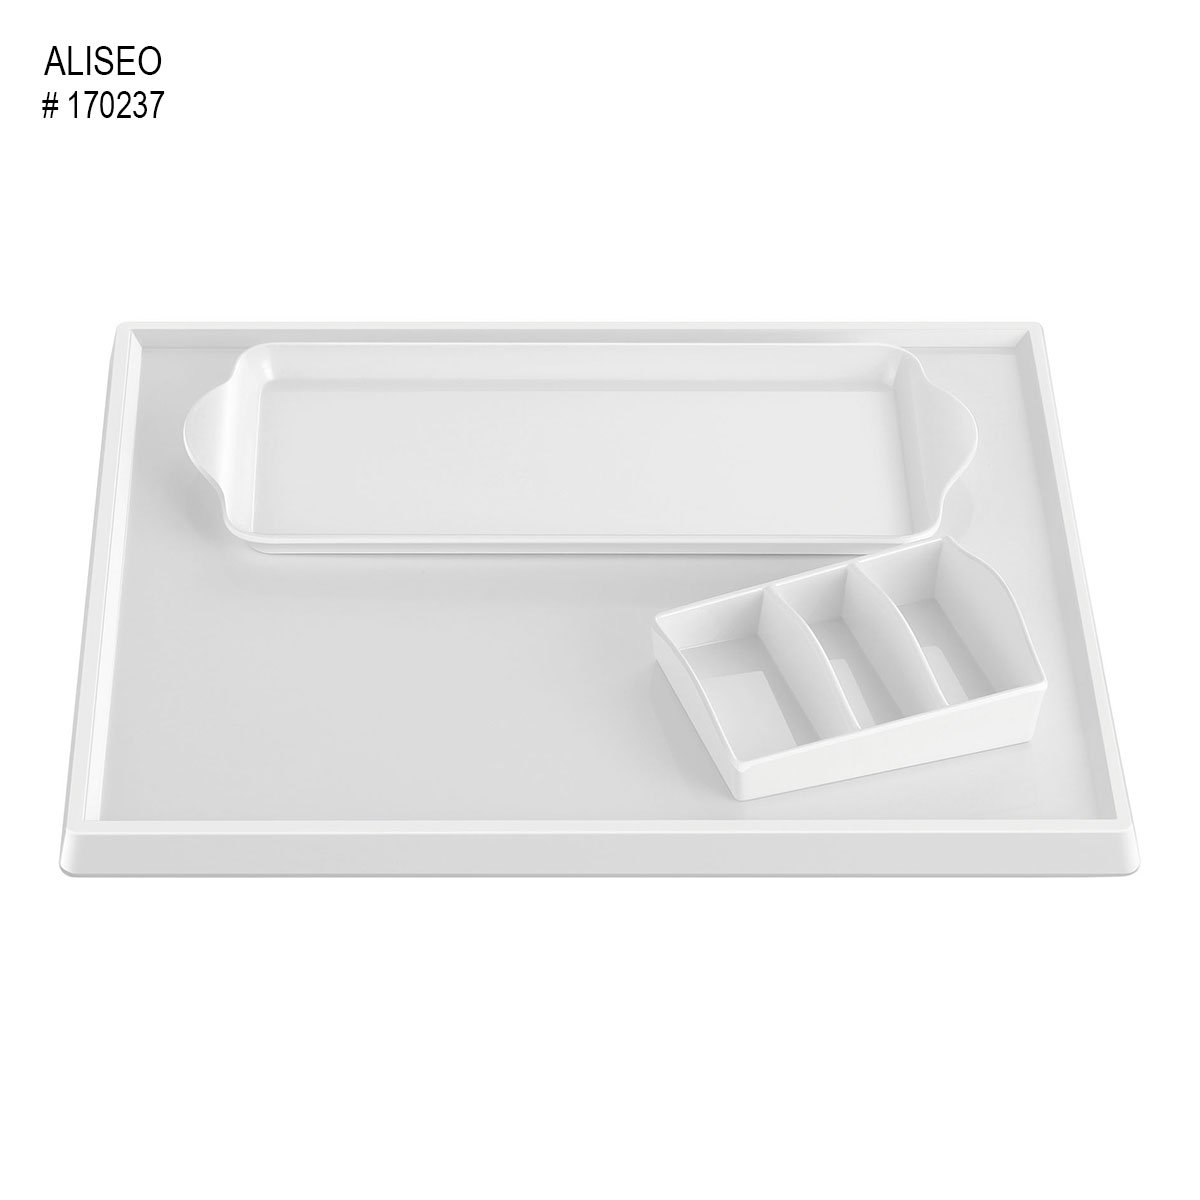 Welcome Tray Solution